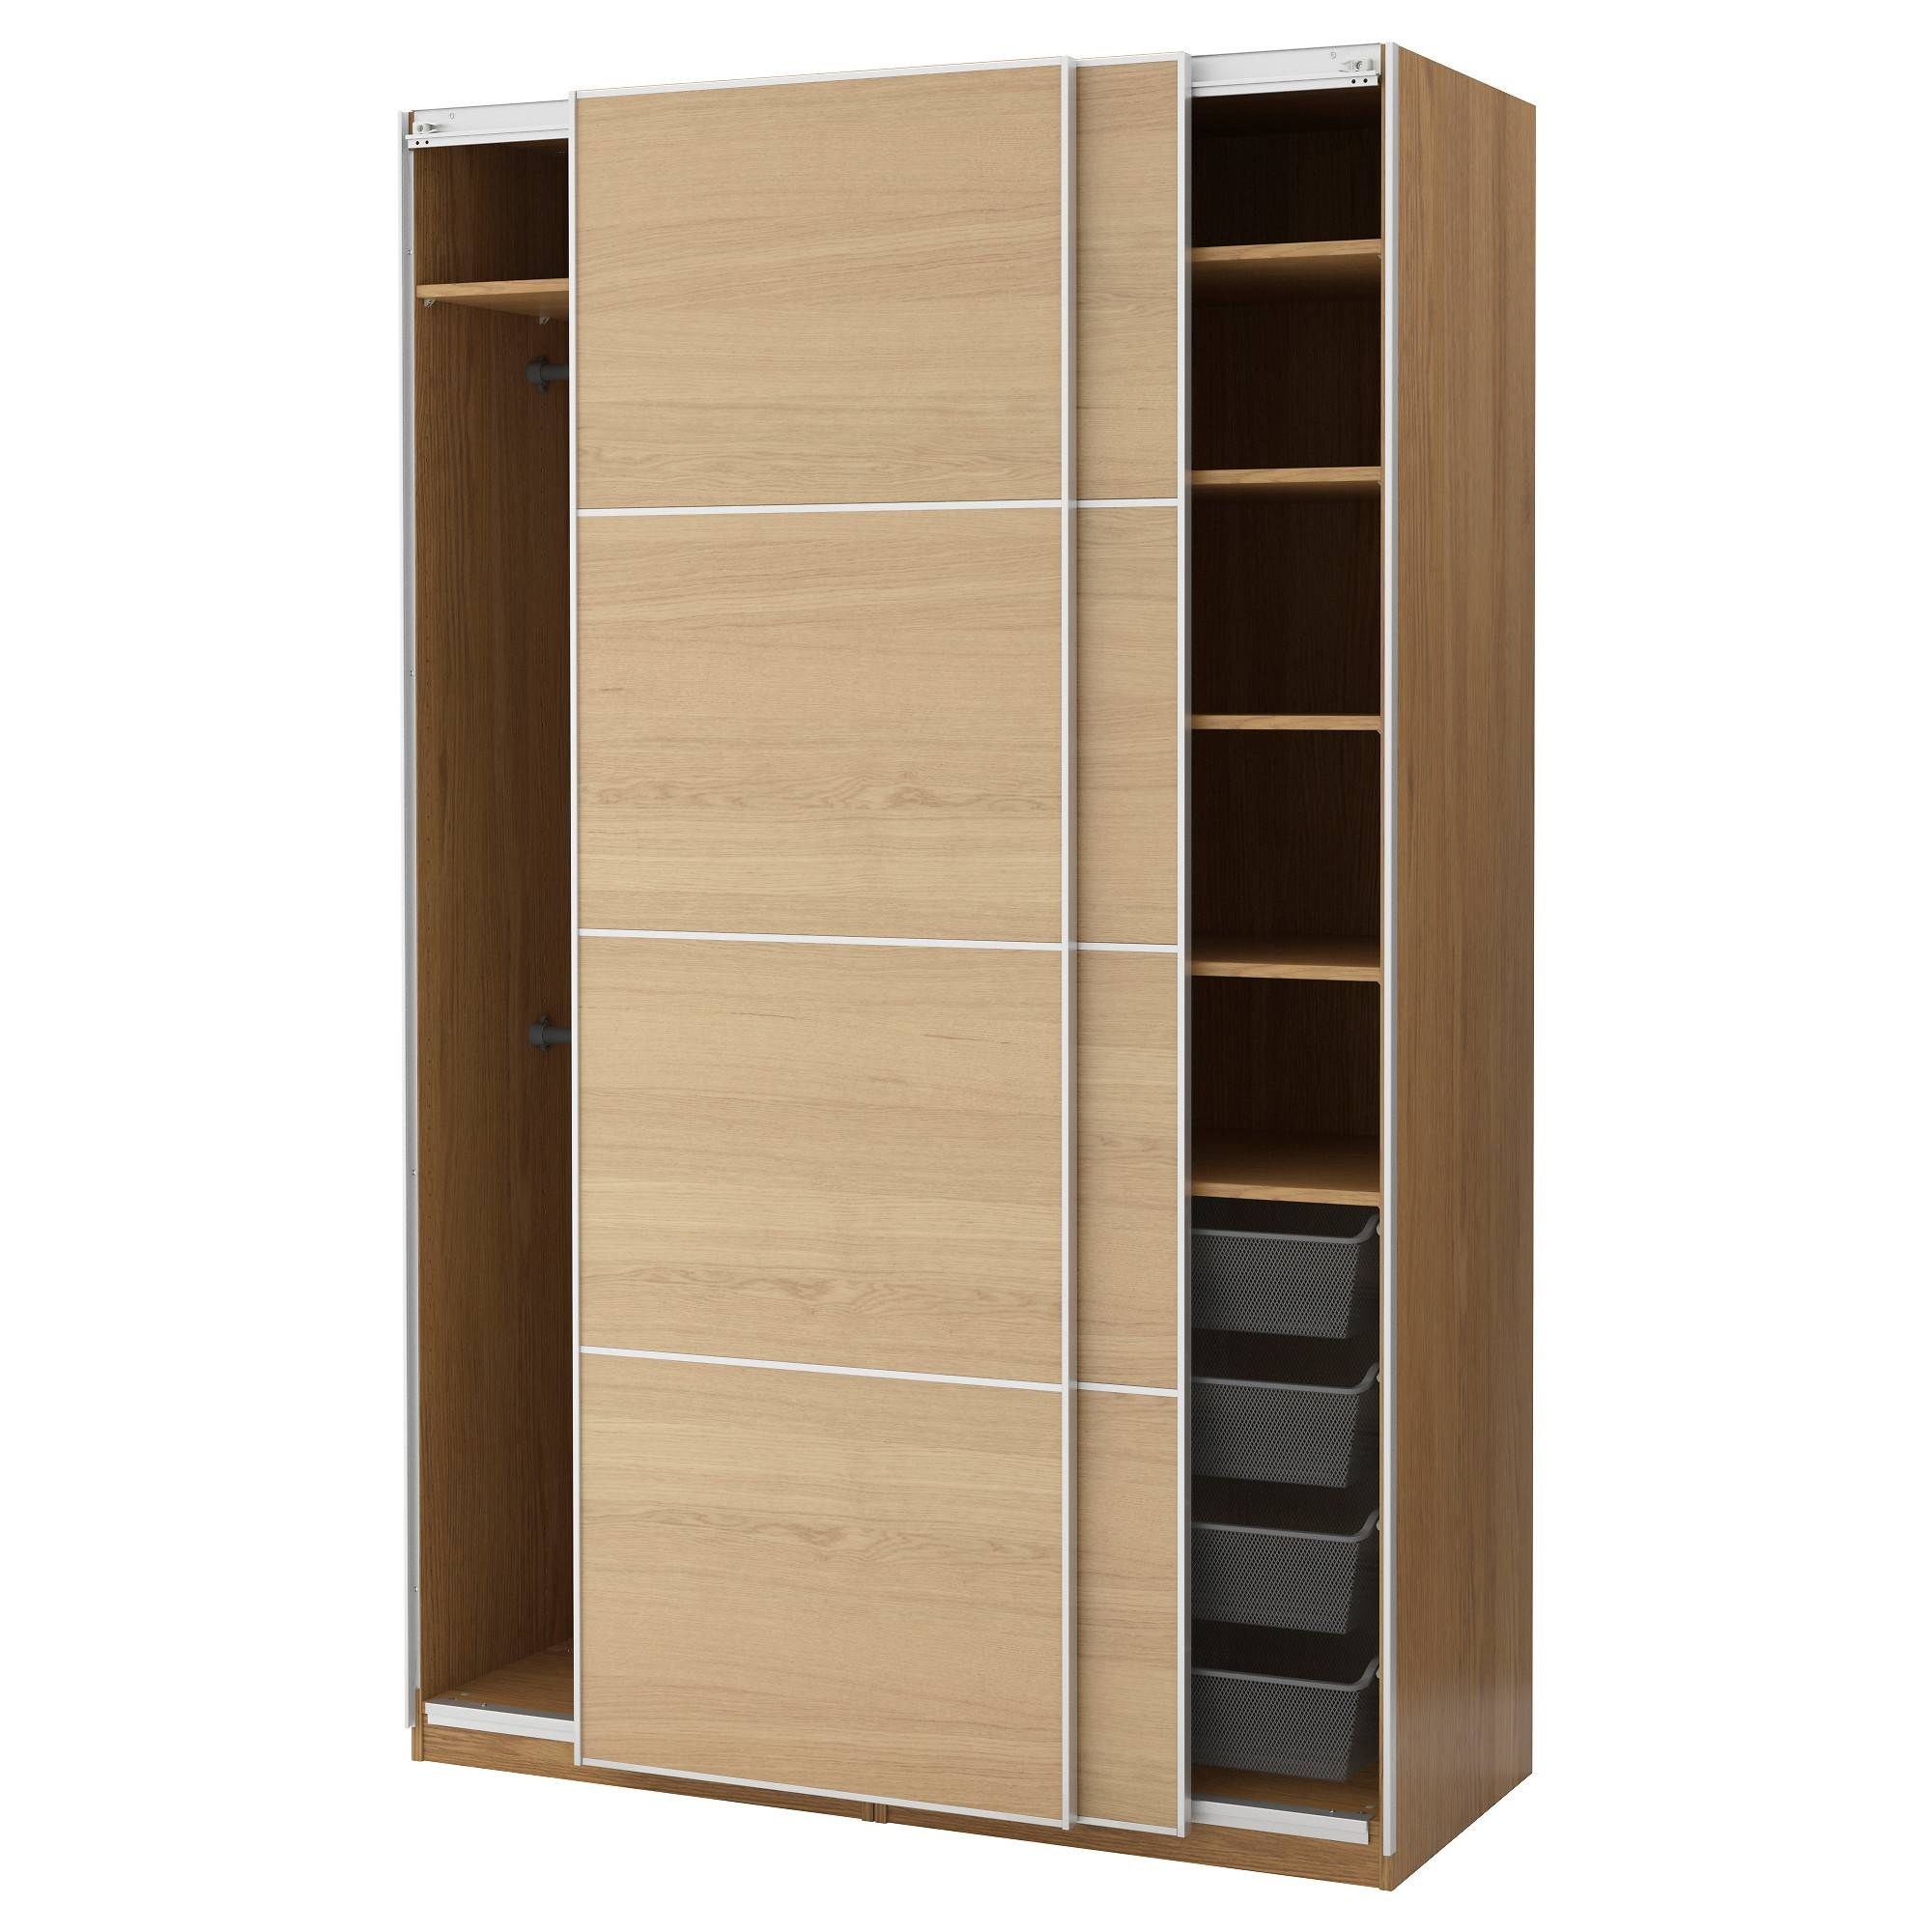 Pax Wardrobes | Built In Wardrobes | Ikea with regard to Dark Wood Wardrobes Ikea (Image 17 of 30)